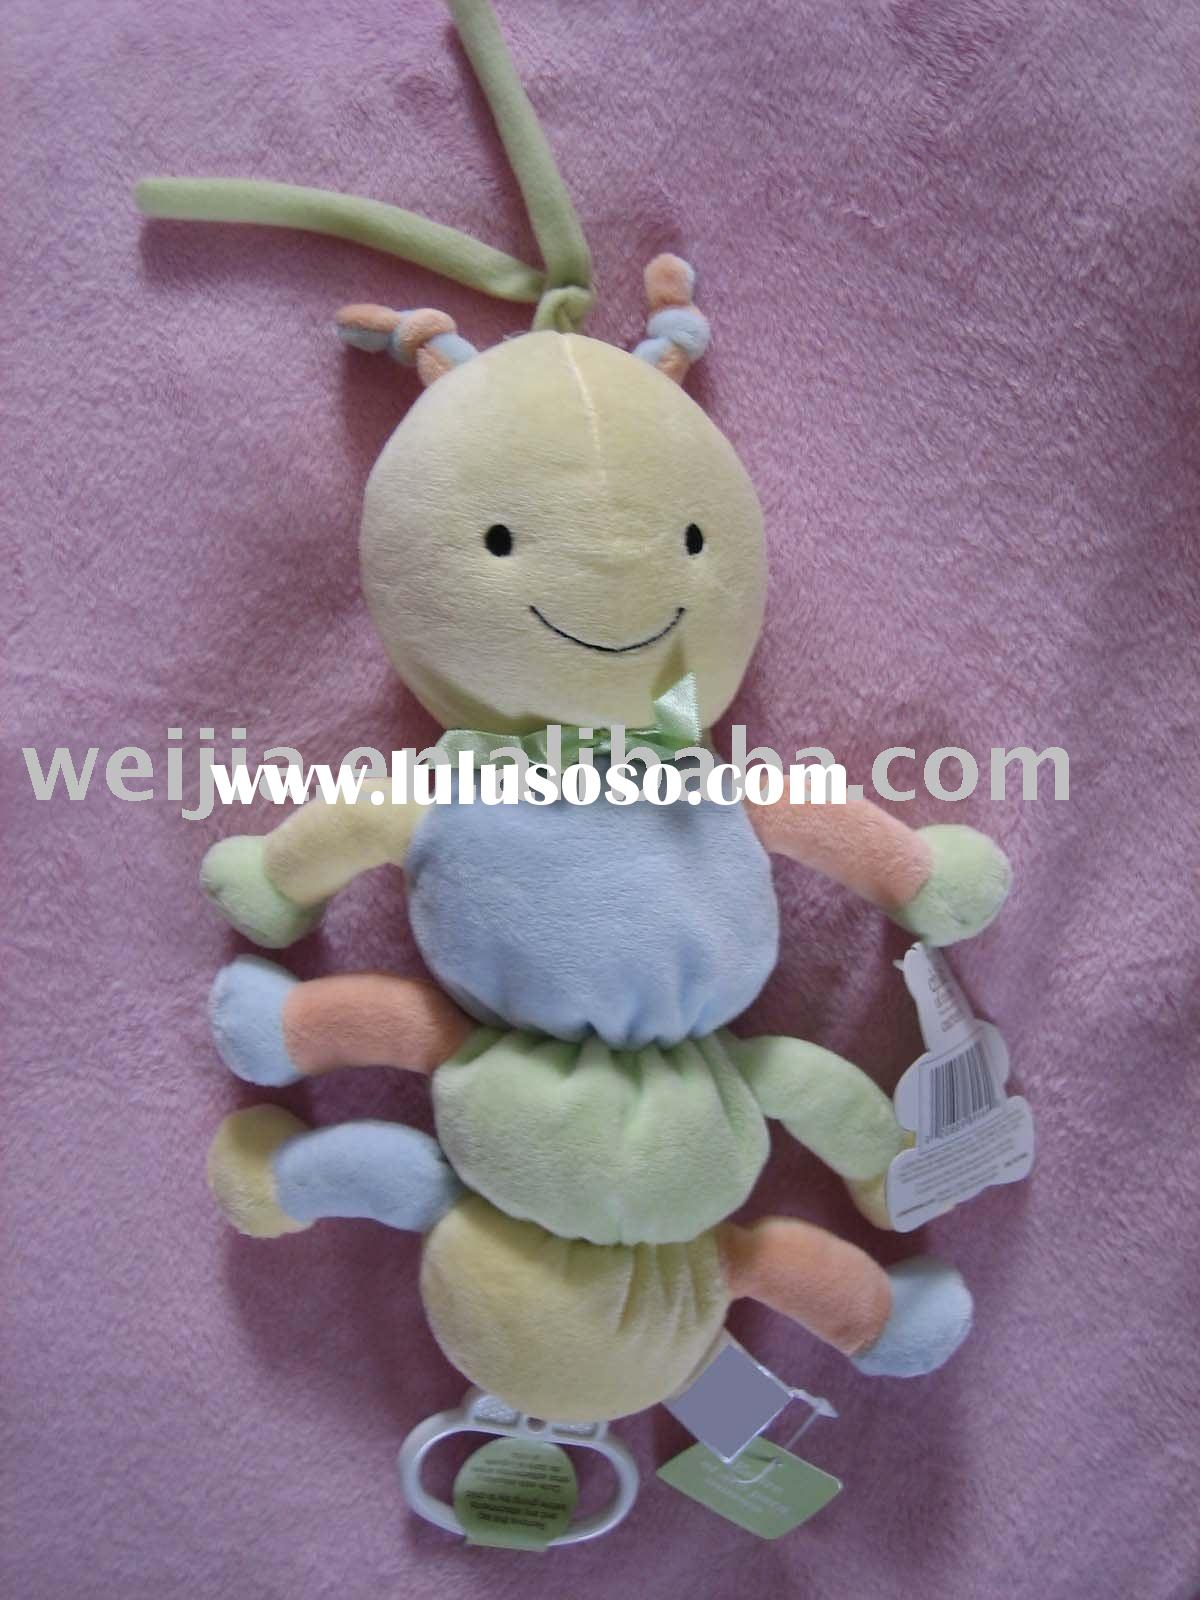 baby toy with musical pull string/plush toy/stuffed baby toy/musical toy/baby gift